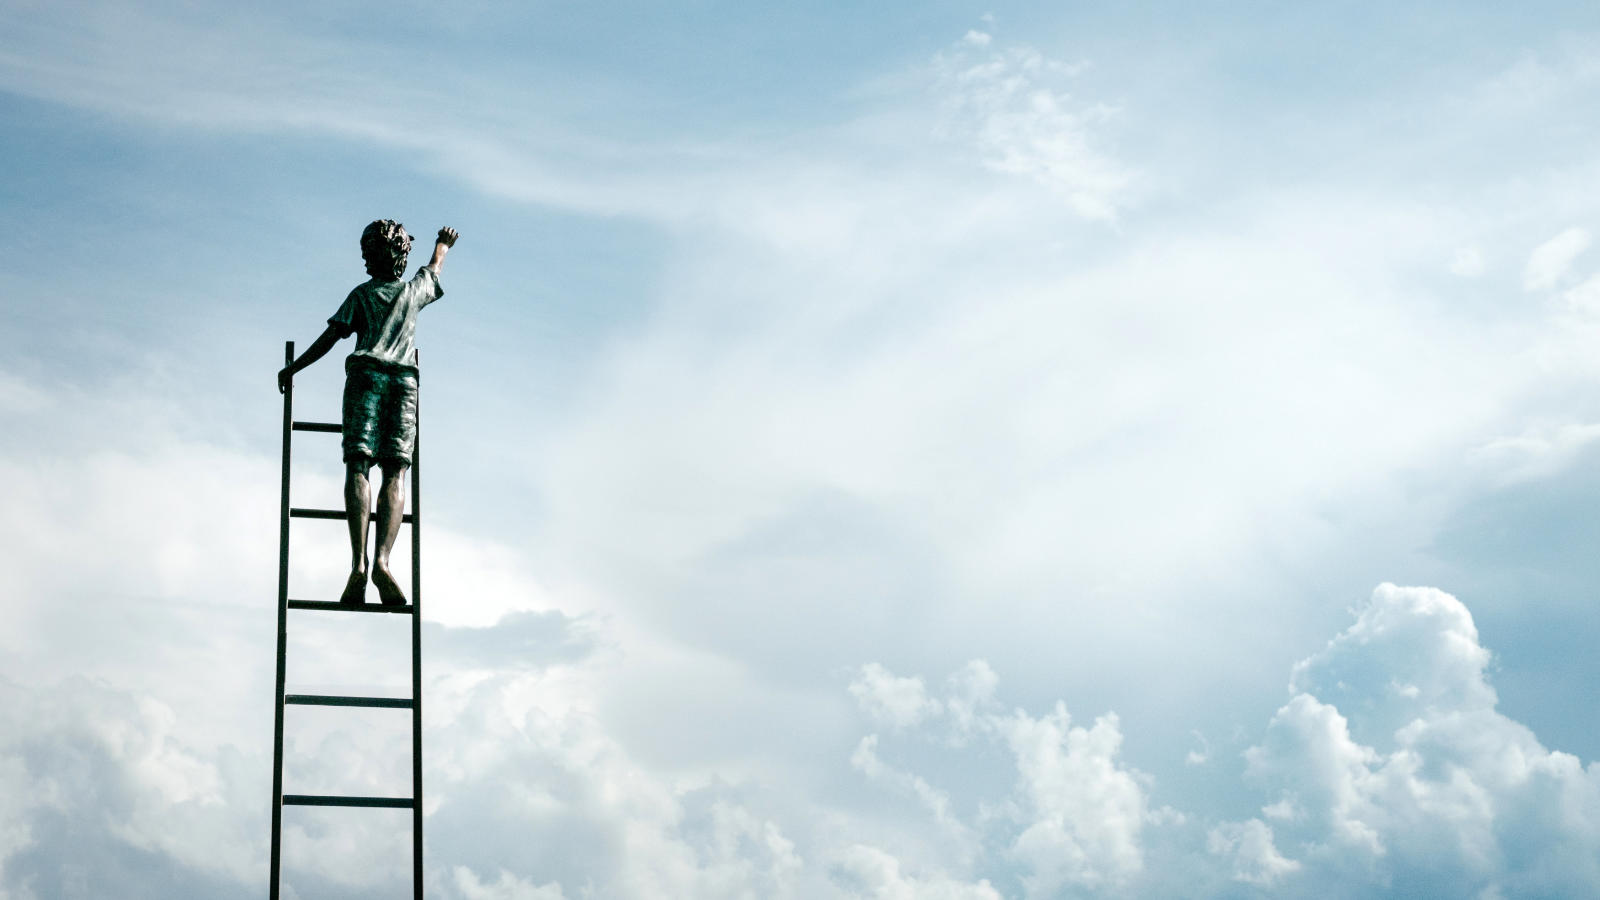 Boy on a ladder in the clouds